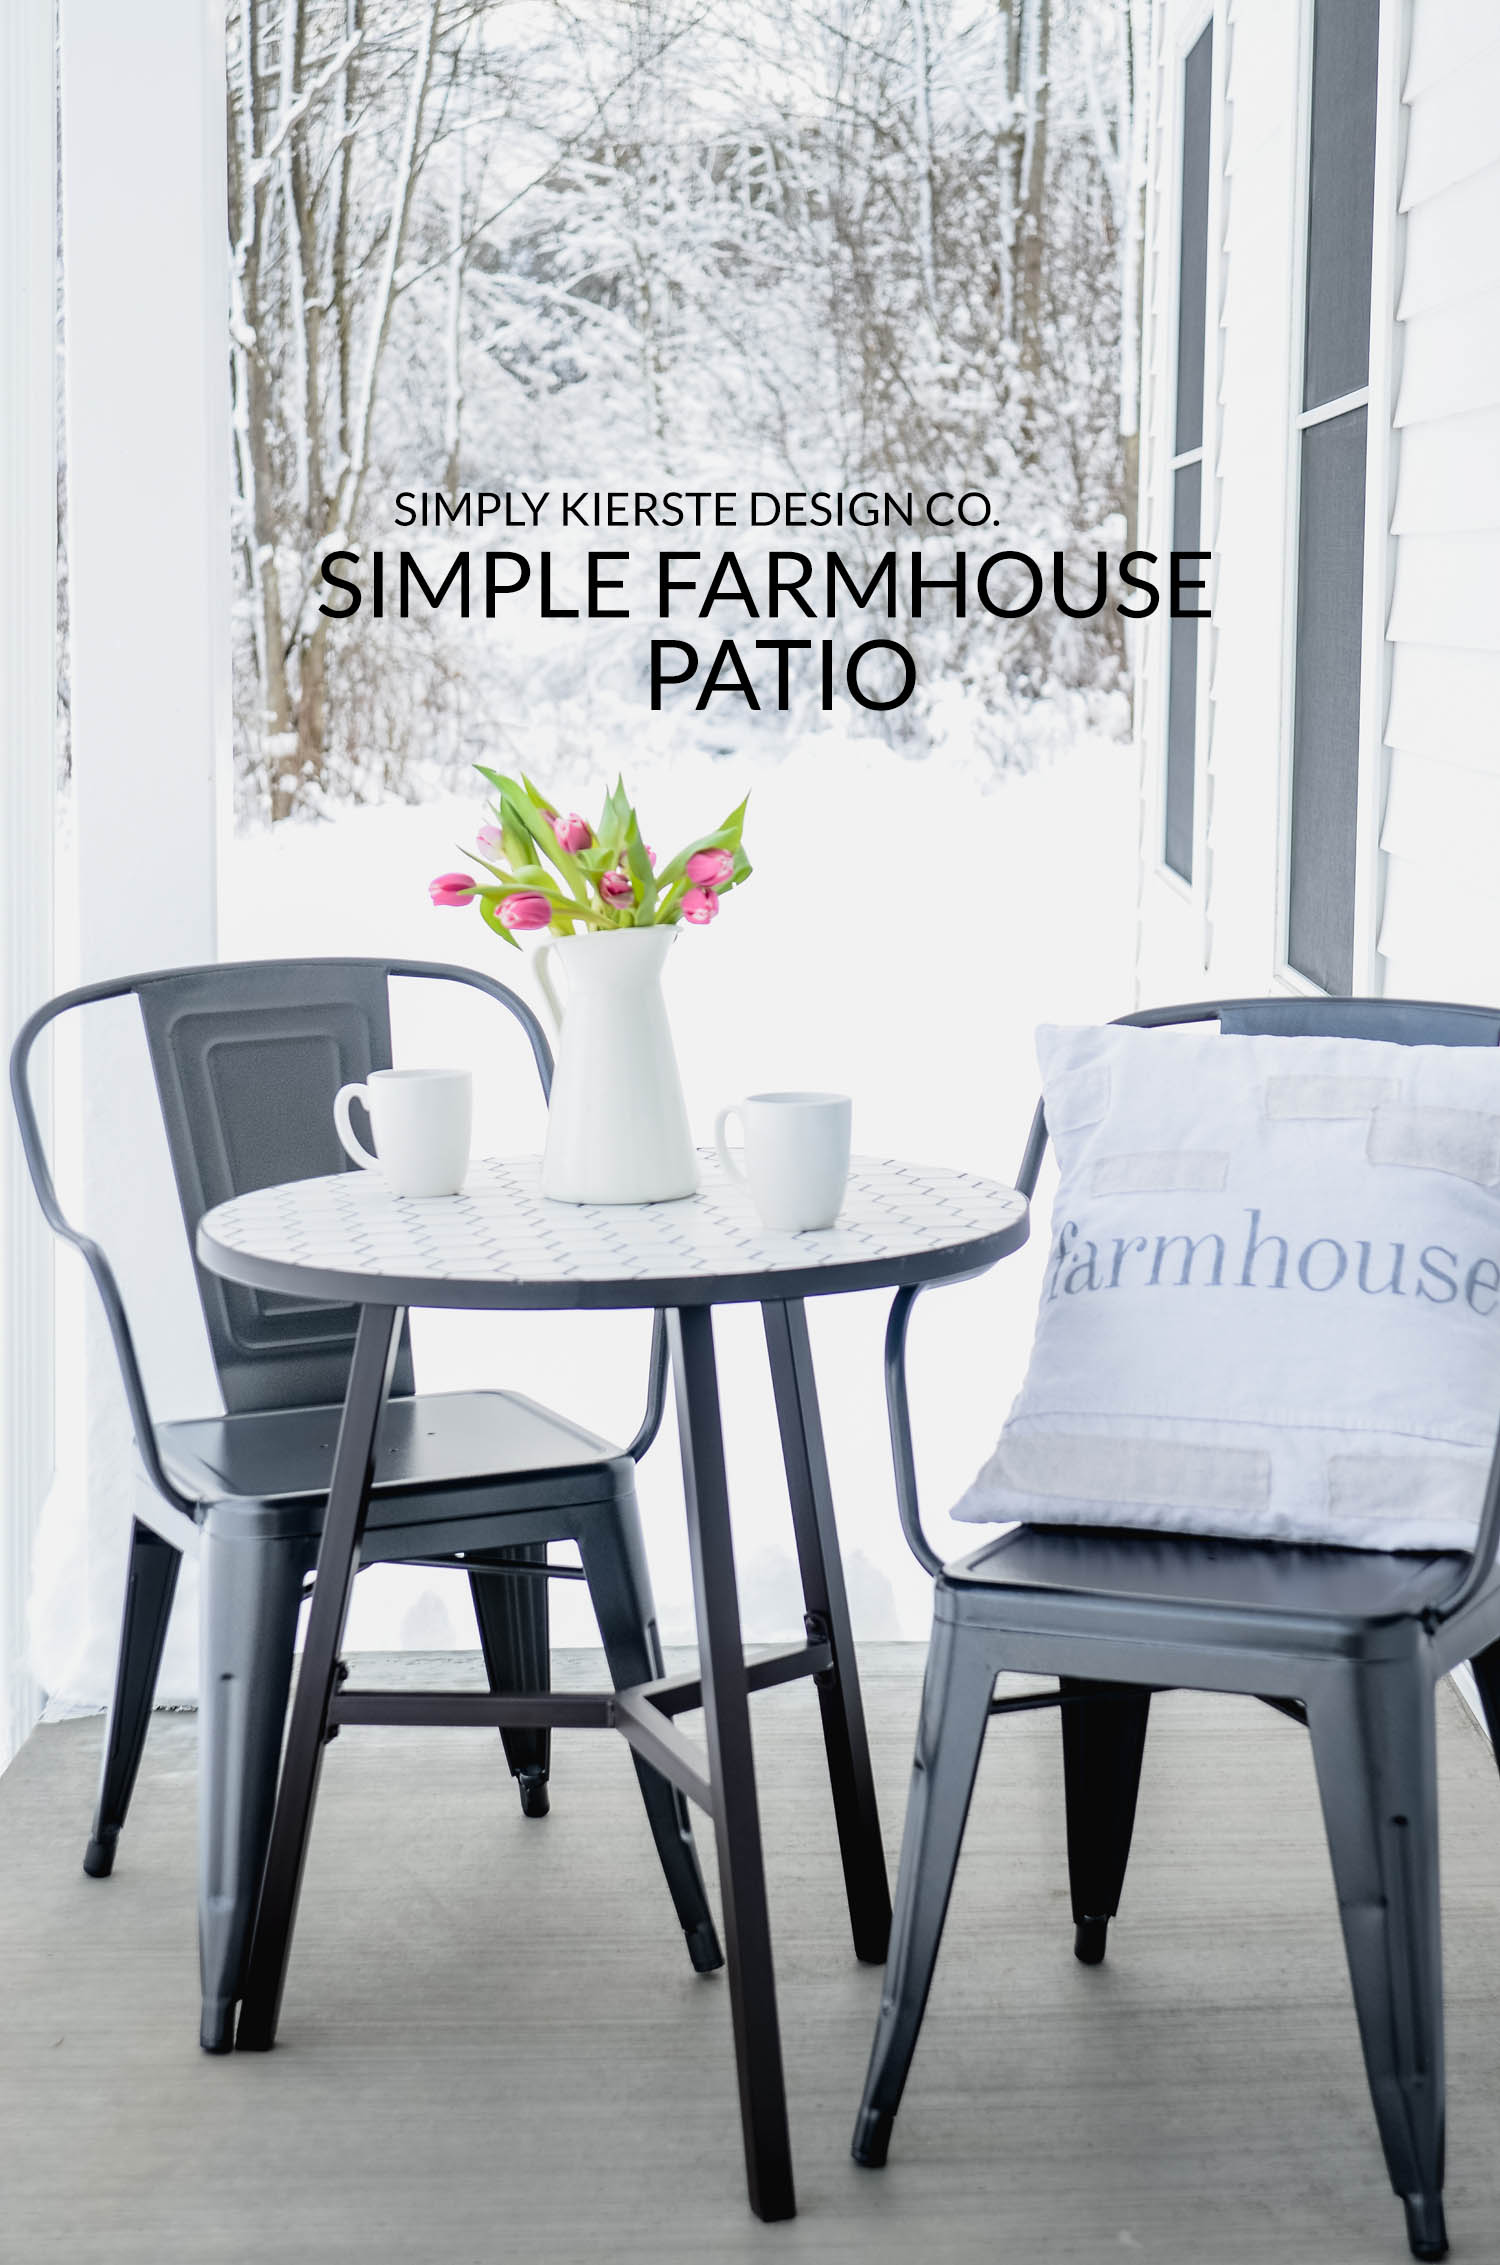 Simple Farmhouse Patio | Cozy Front Porch | simplykierste.com #farmhouse #farmhousestyle #outdoorentertaining #patiofurniture